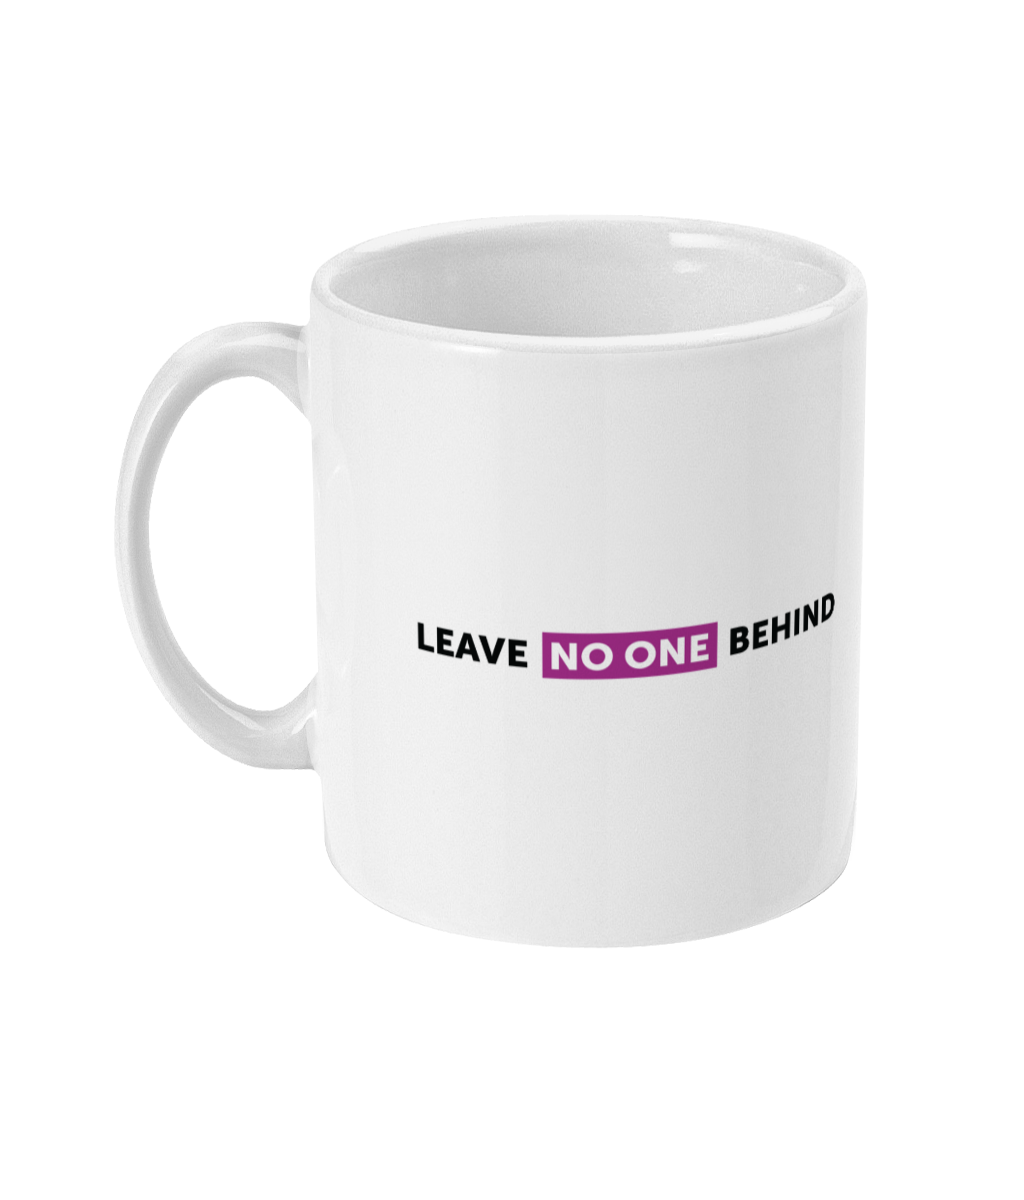 Leave No One Behind - Mug